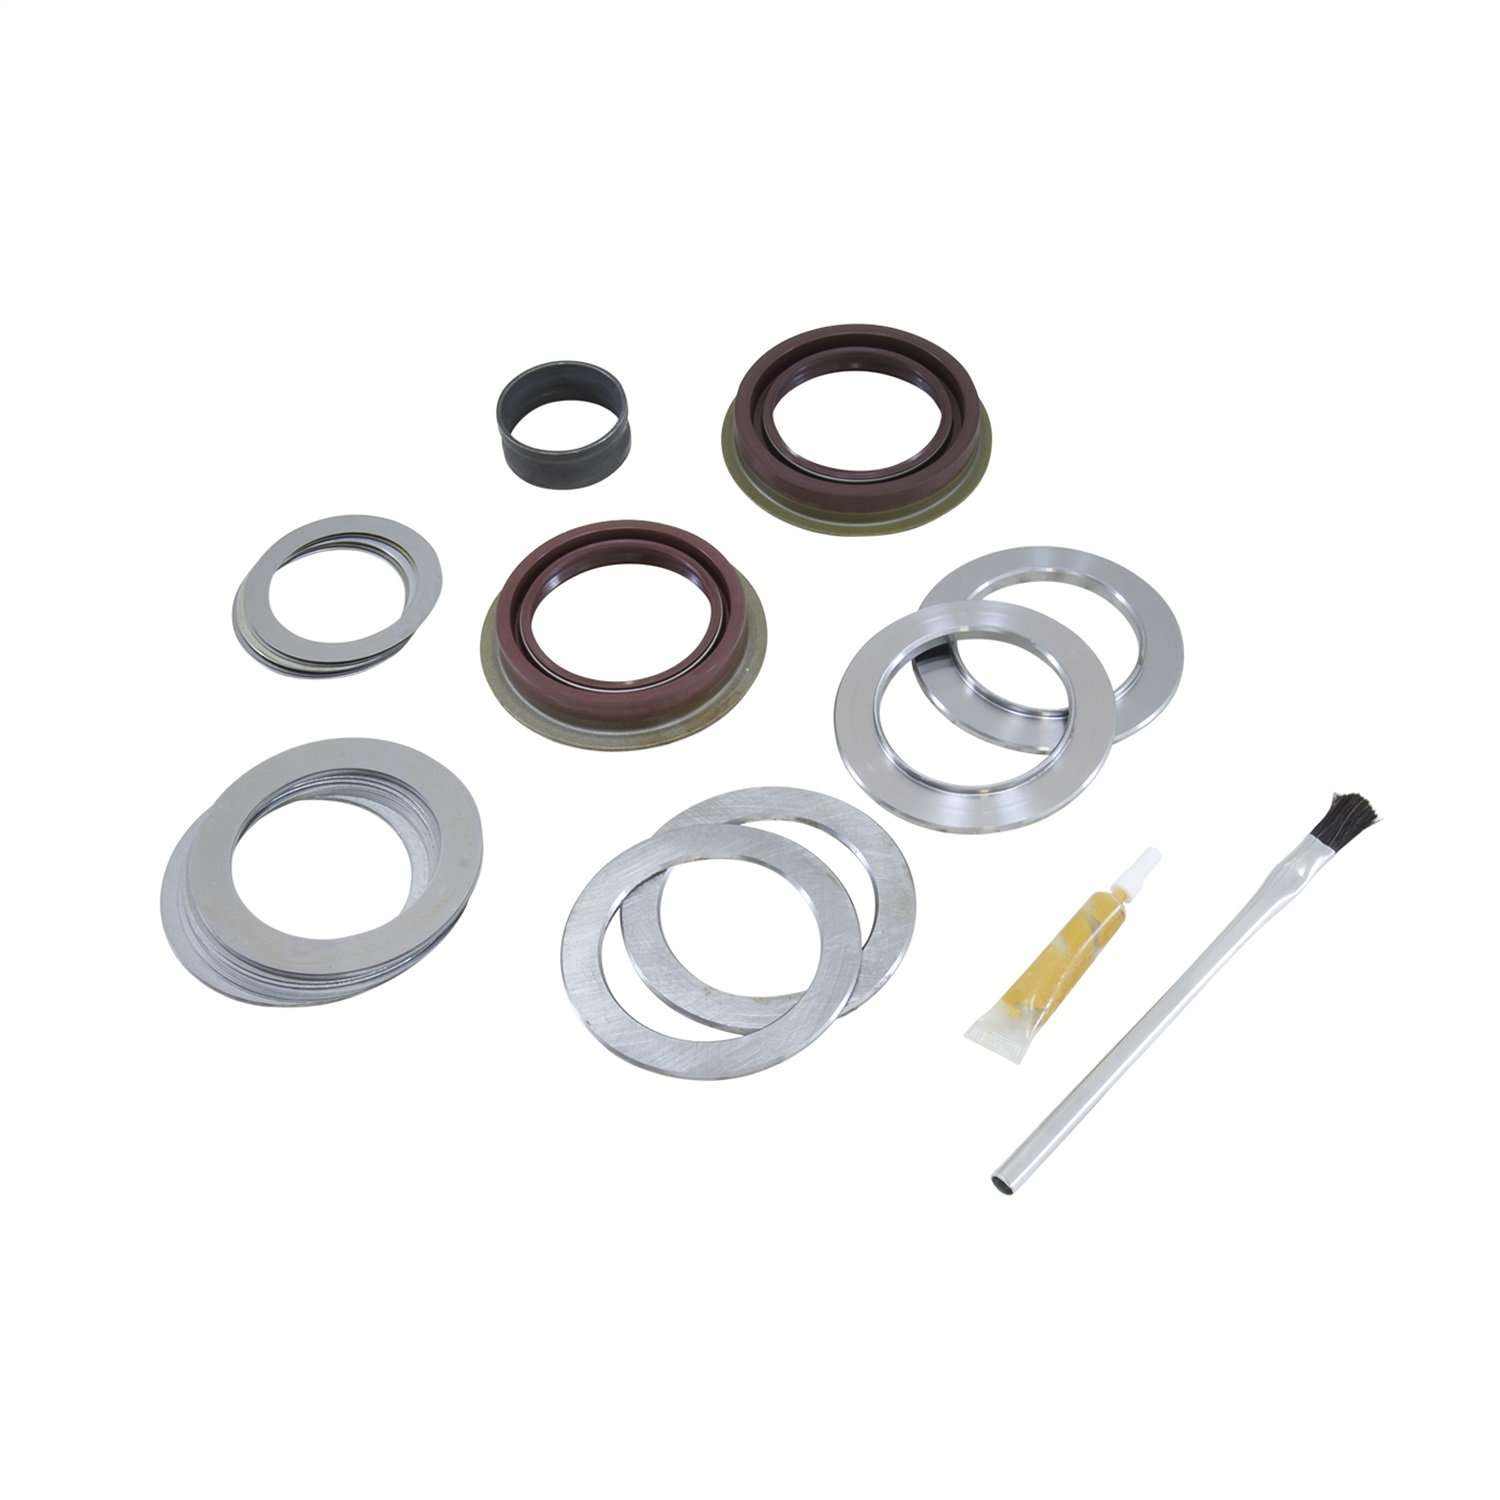 Yukon (MK GM8.6) Minor Installation Kit for GM 8.6'' Rear Differential